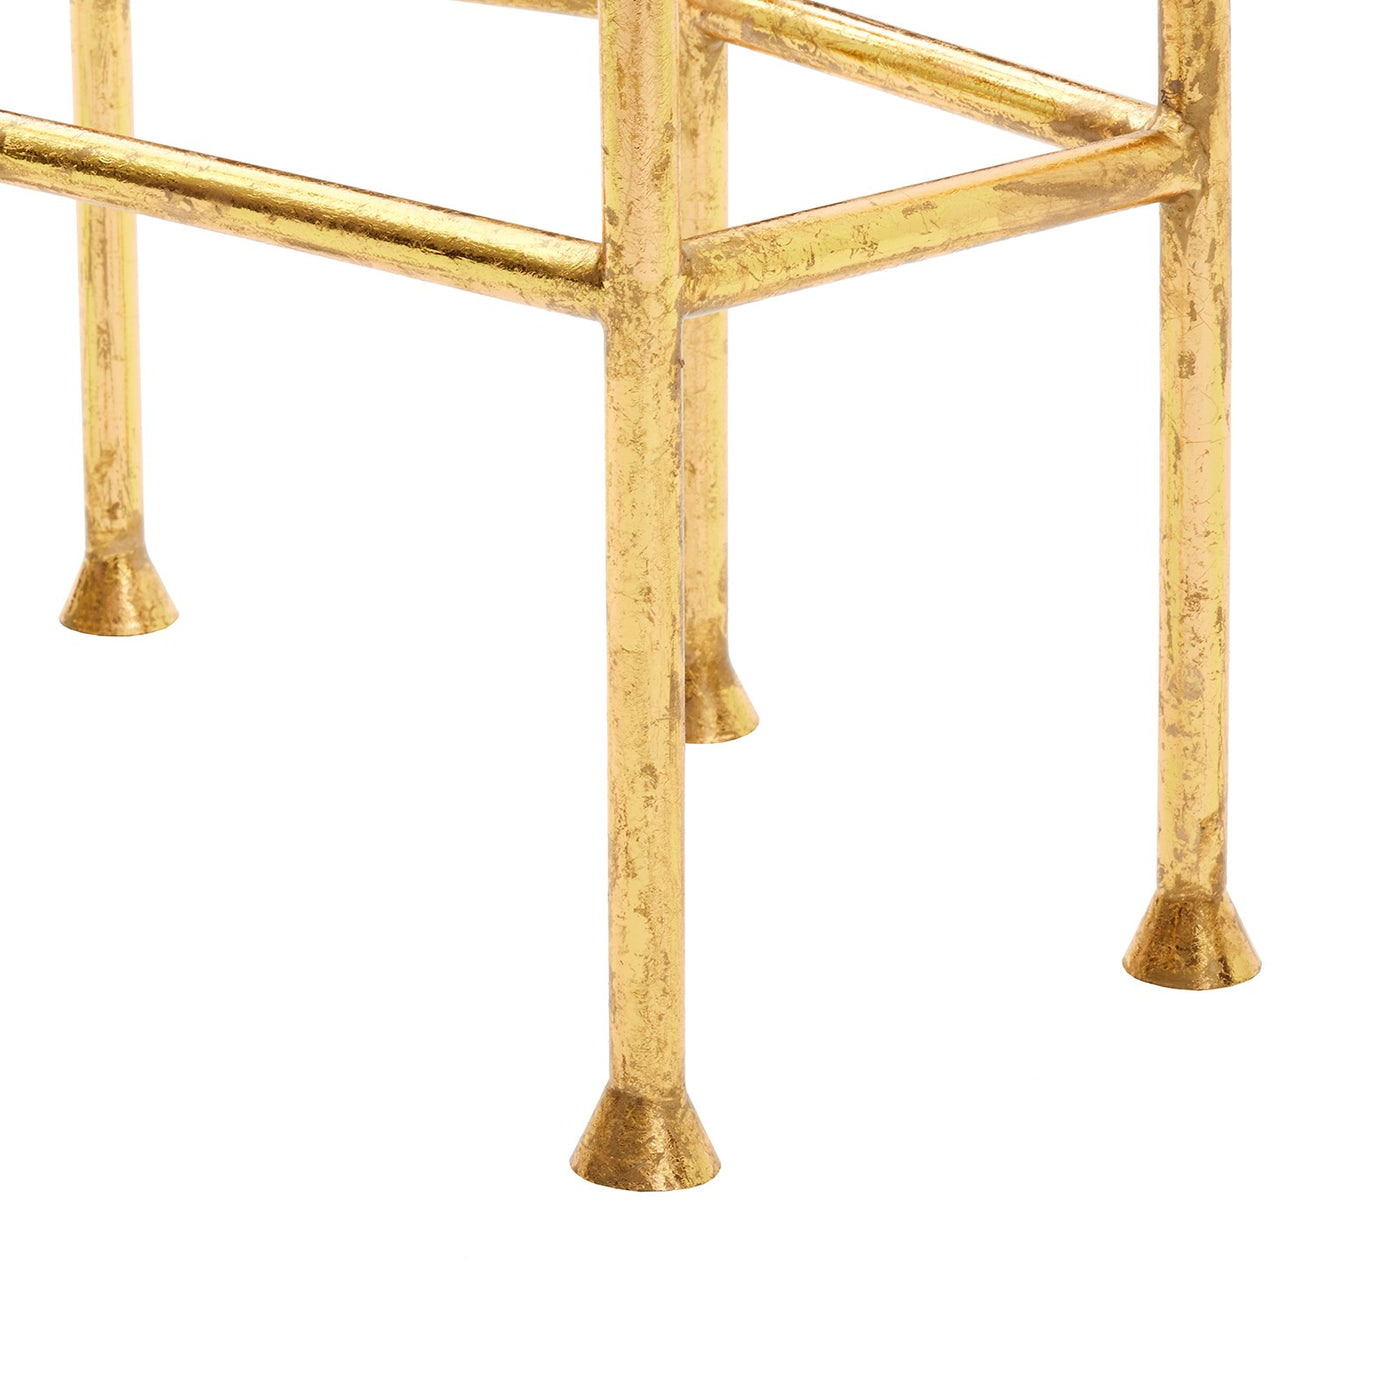 bungalow 5 cristal side table gold legs